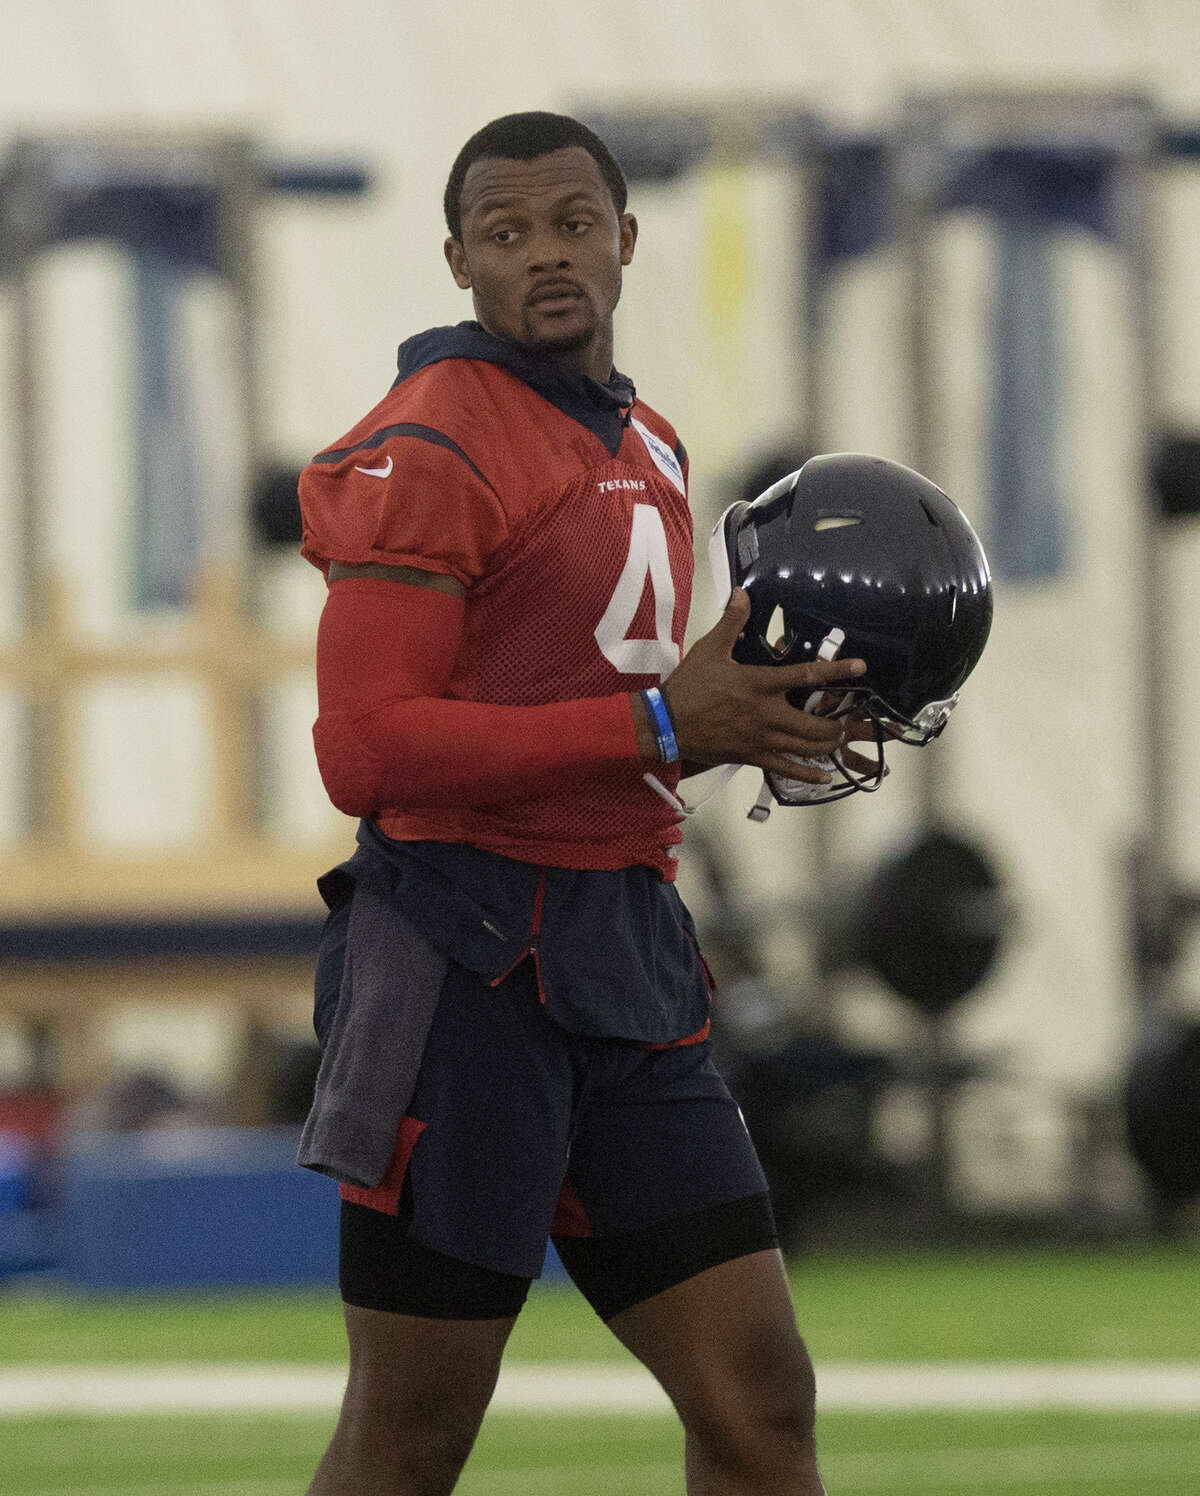 Houston Texans Quarterback Deshaun Watson during an OTA session at the Houston Methodist Training Center on Tuesday, June 4, 2019, in Houston.